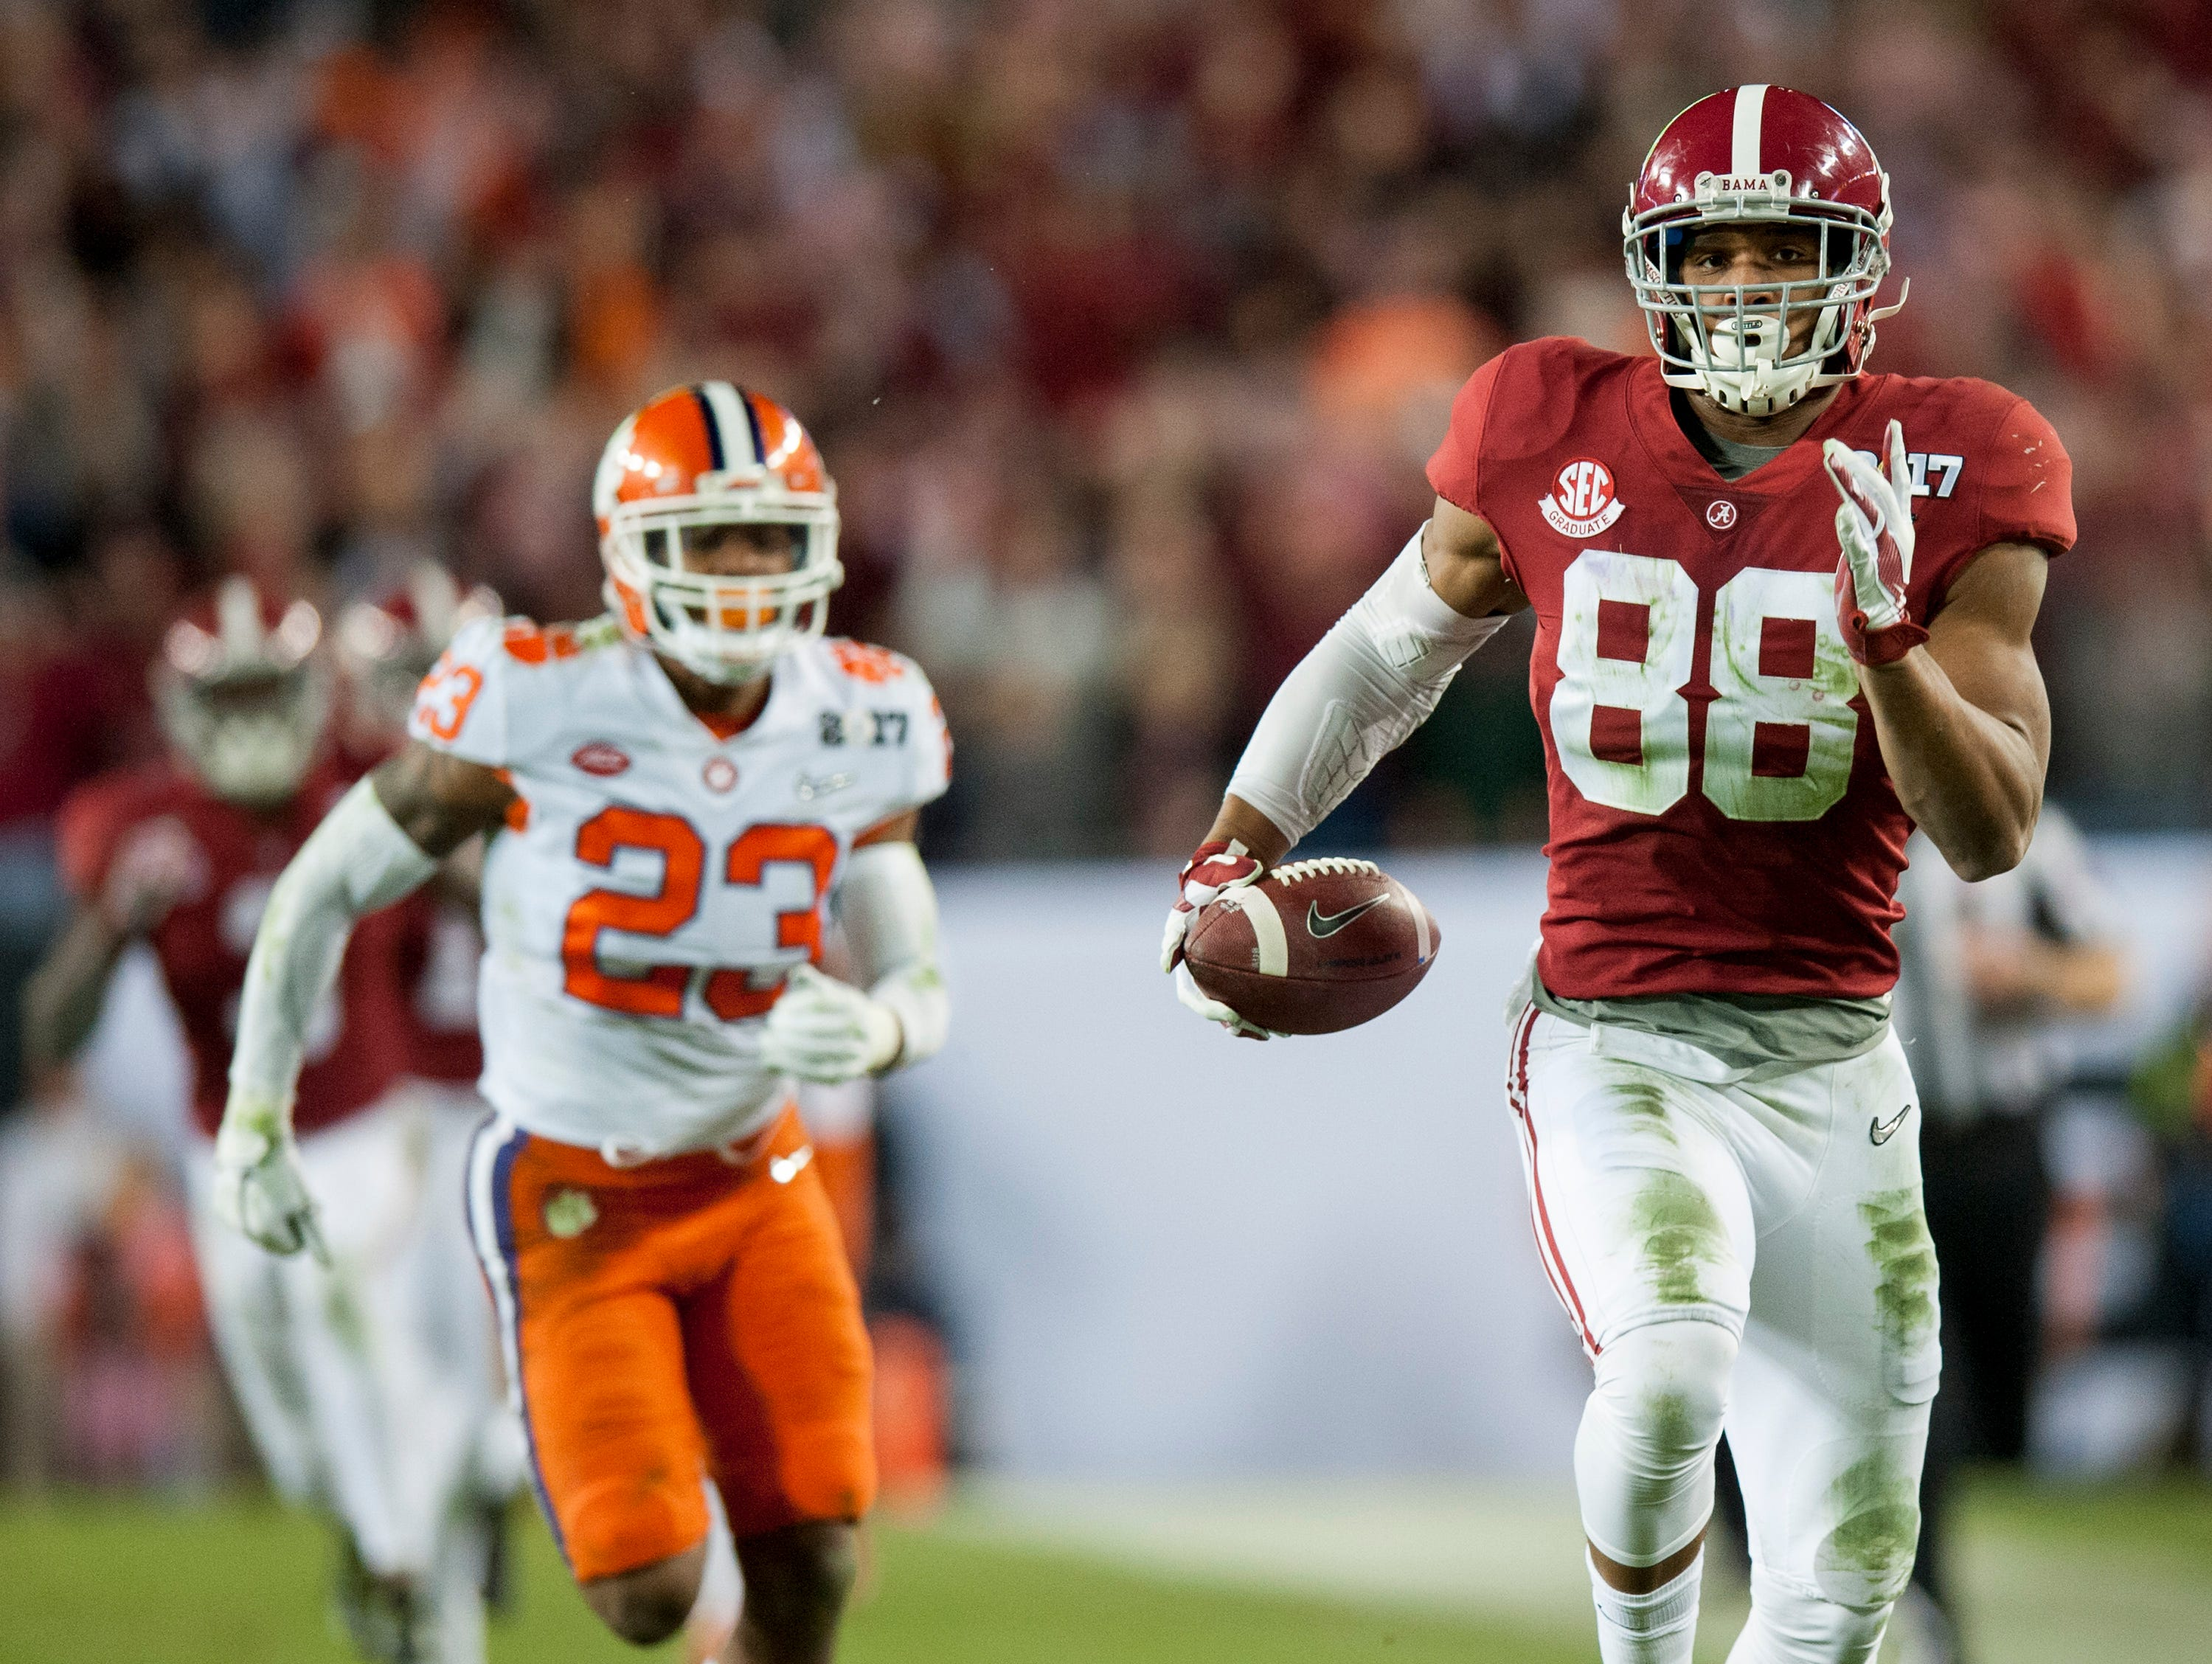 Alabama tight end O.J. Howard (88) carries in a touchdown reception in second half action of the College Football Playoff National Championship Game at Raymond James Stadium in Tampa, Fla. on Monday January 9, 2017.